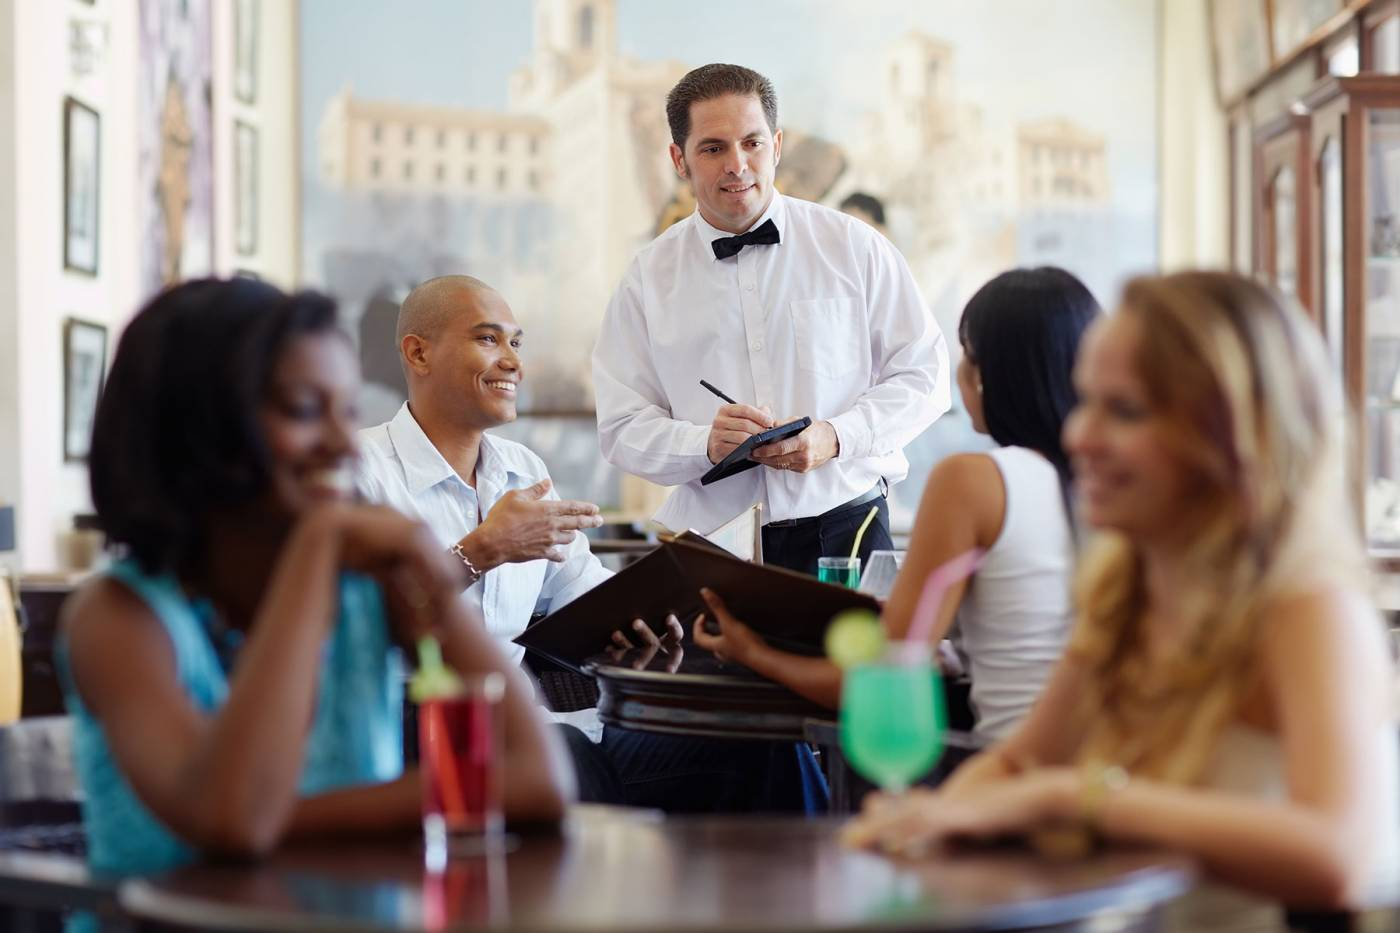 Why Upselling Is Important For The Guest Experience The